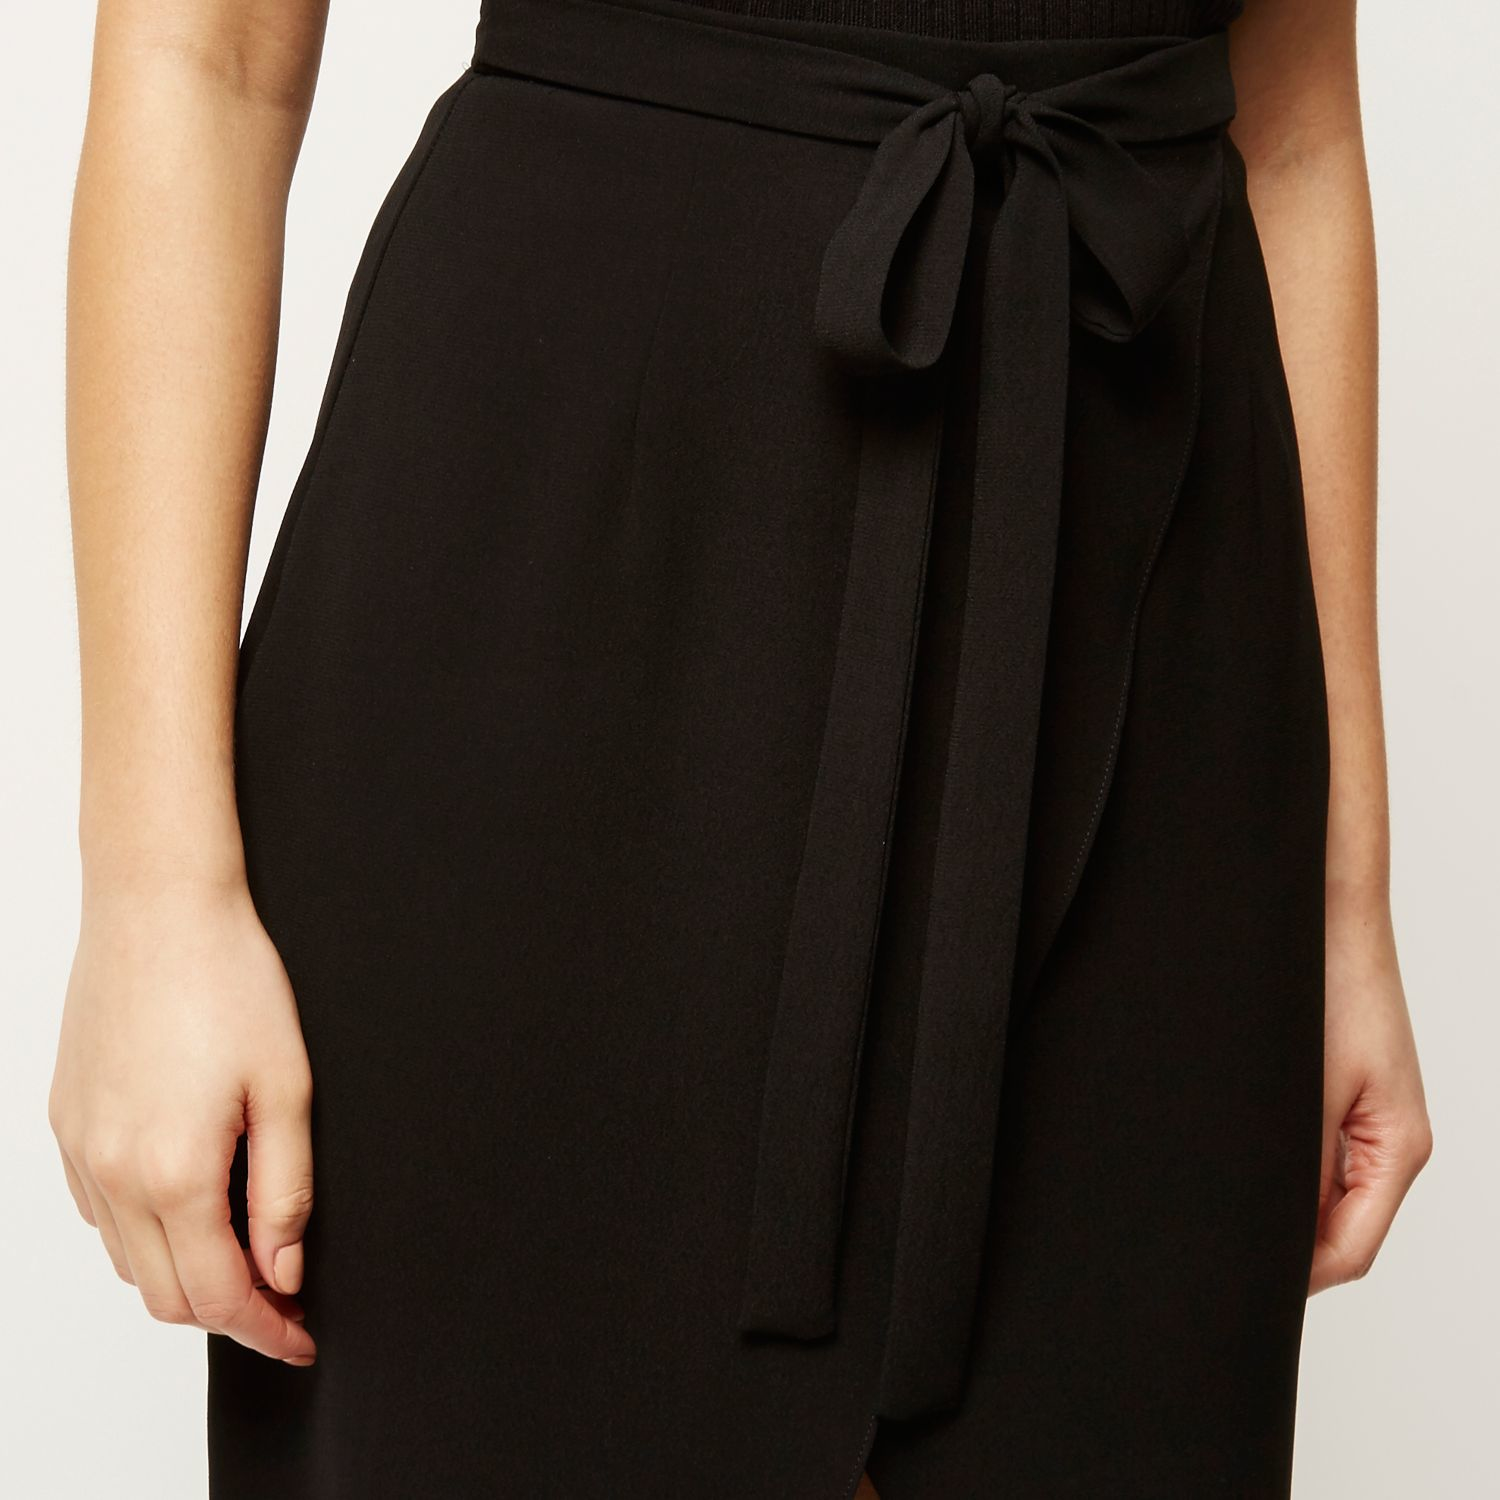 River island Black Wrap Tie Midi Skirt in Black | Lyst